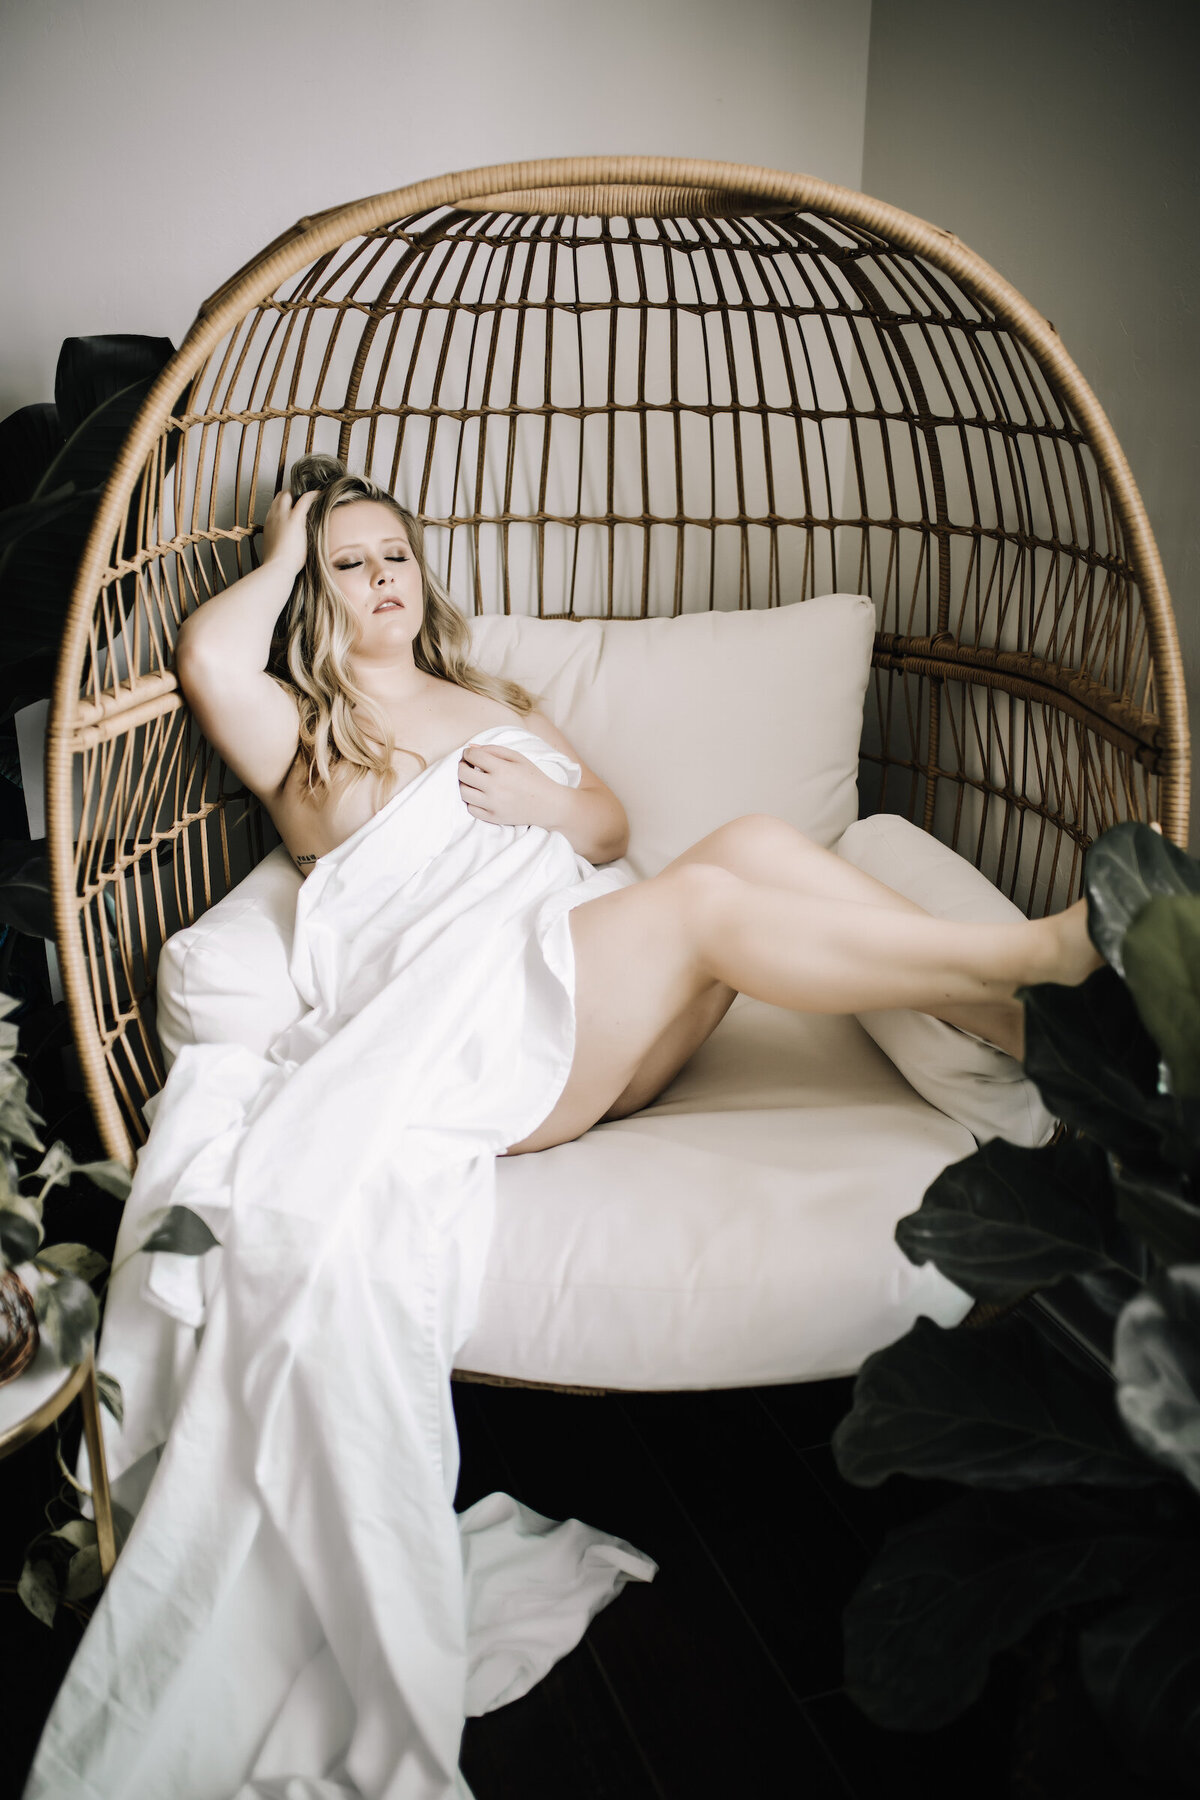 Mikayla_BoudoirSession-120